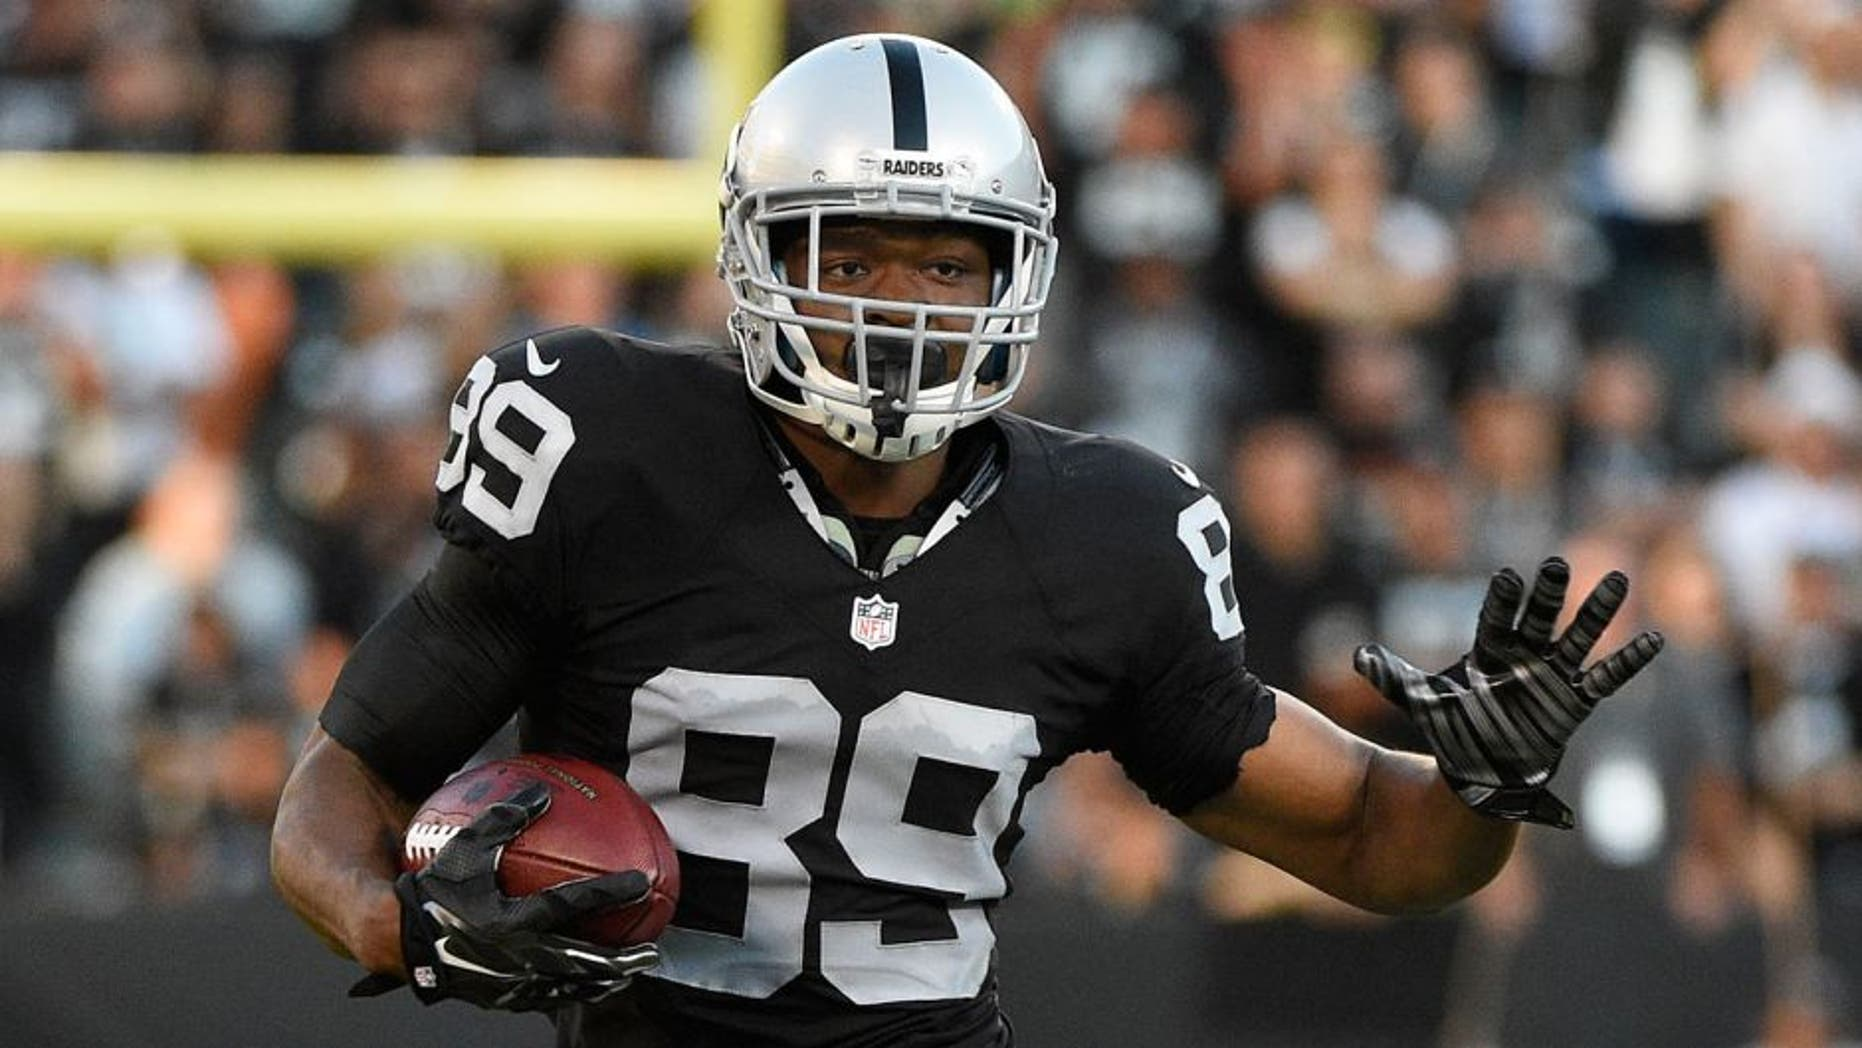 August 14, 2015; Oakland, CA, USA; Oakland Raiders wide receiver Amari Cooper (89) runs with the football against the St. Louis Rams during the first quarter in a preseason NFL football game at O.co Coliseum. Mandatory Credit: Kyle Terada-USA TODAY Sports